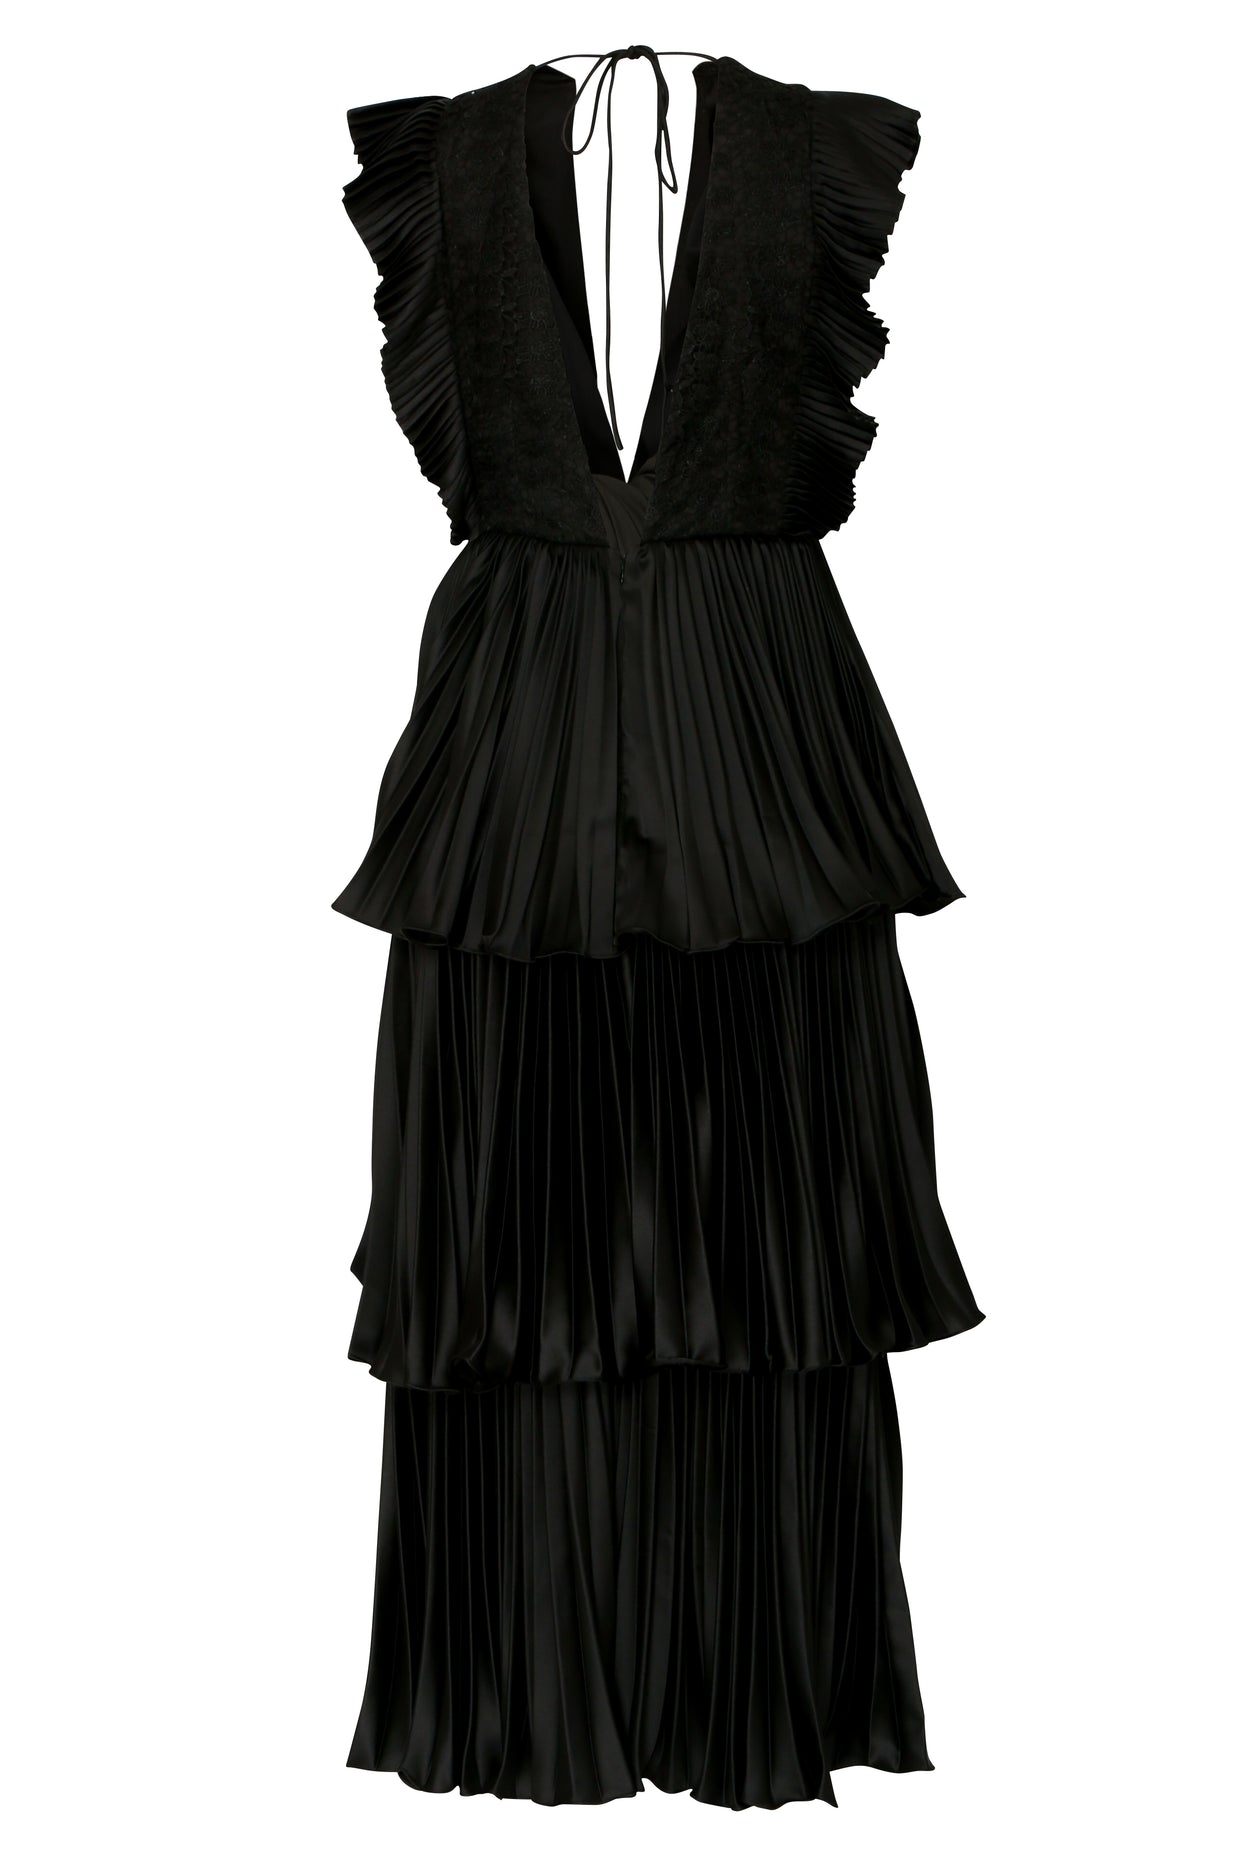 Black Satin Pleated Tiered Midaxi Dress